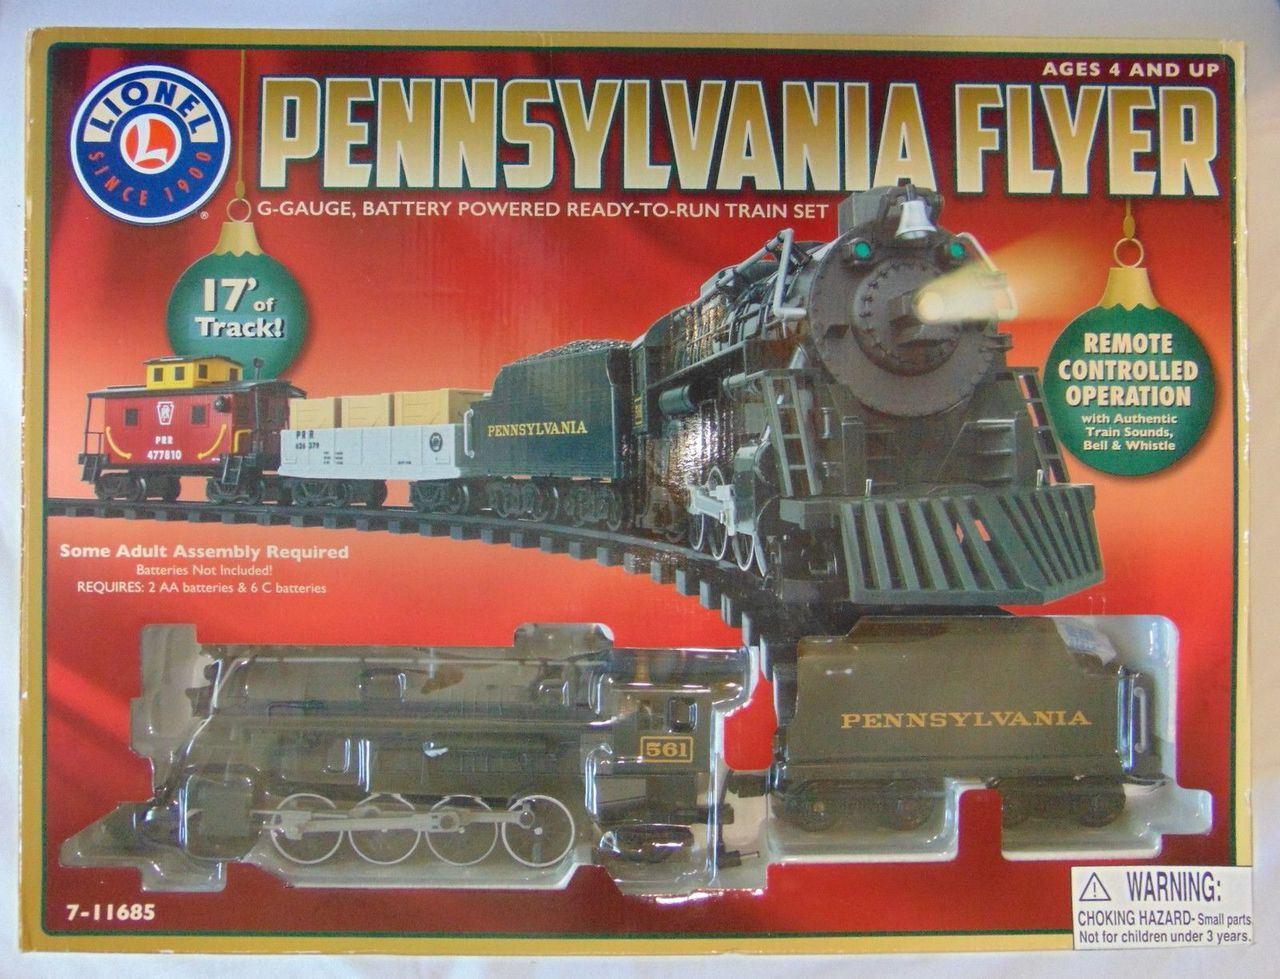 Greenlight M2 Machines Auto World Hot Wheels more Whats New In Diecast : Lionel Pennsylvania Flyer G Gauge Battery Powered ...